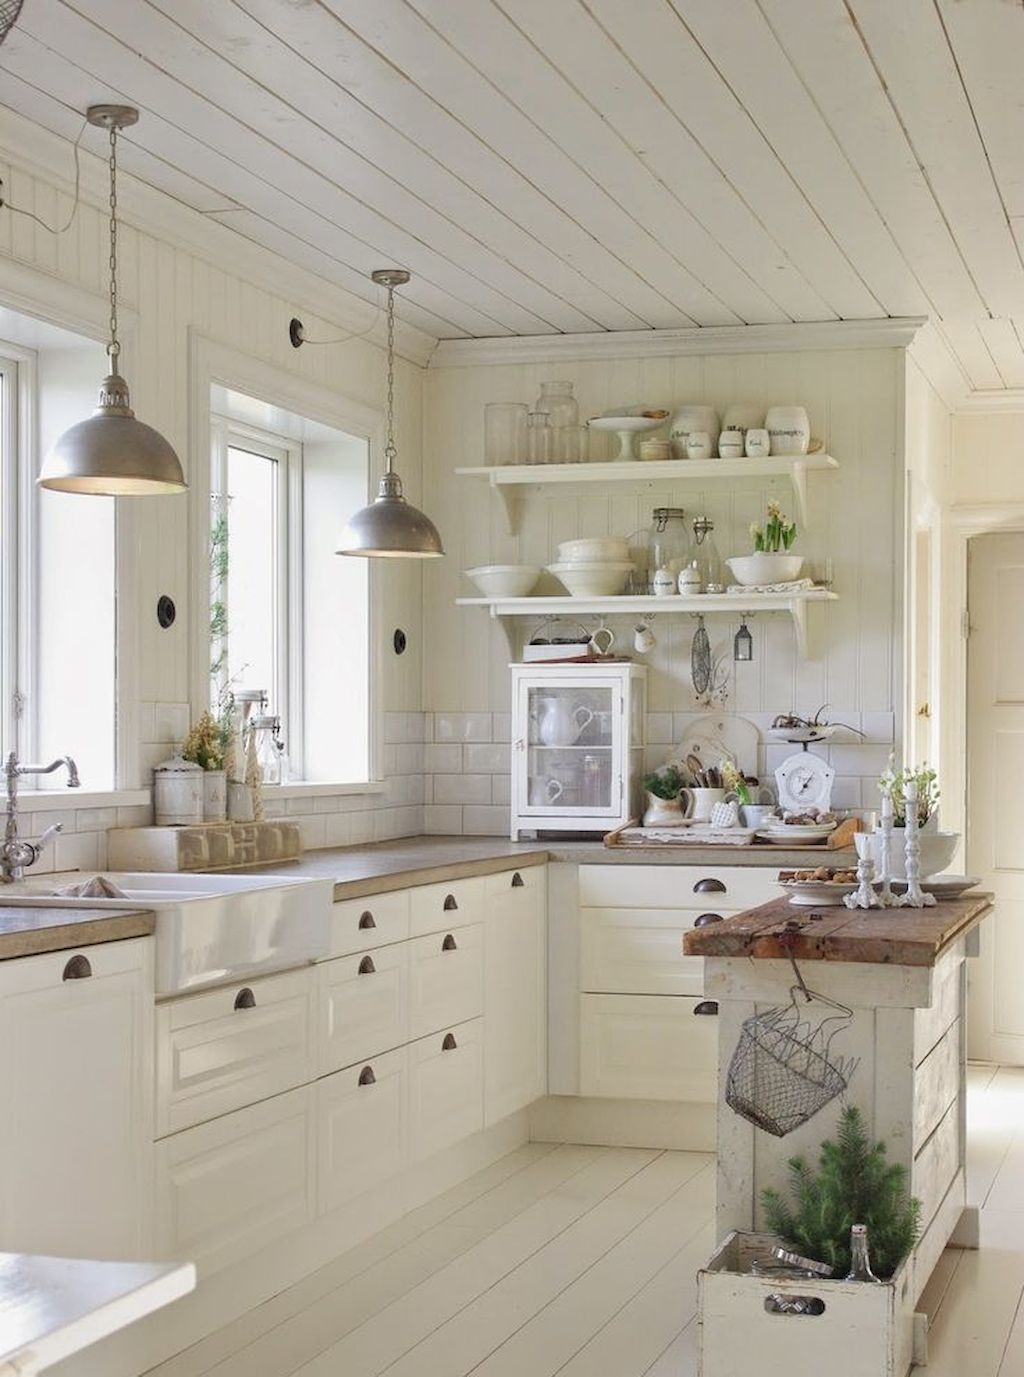 Farmhouse kitchen kitchen design decorating ideas housetohome co - 40 Beautiful Kitchen Decor Ideas On A Budget